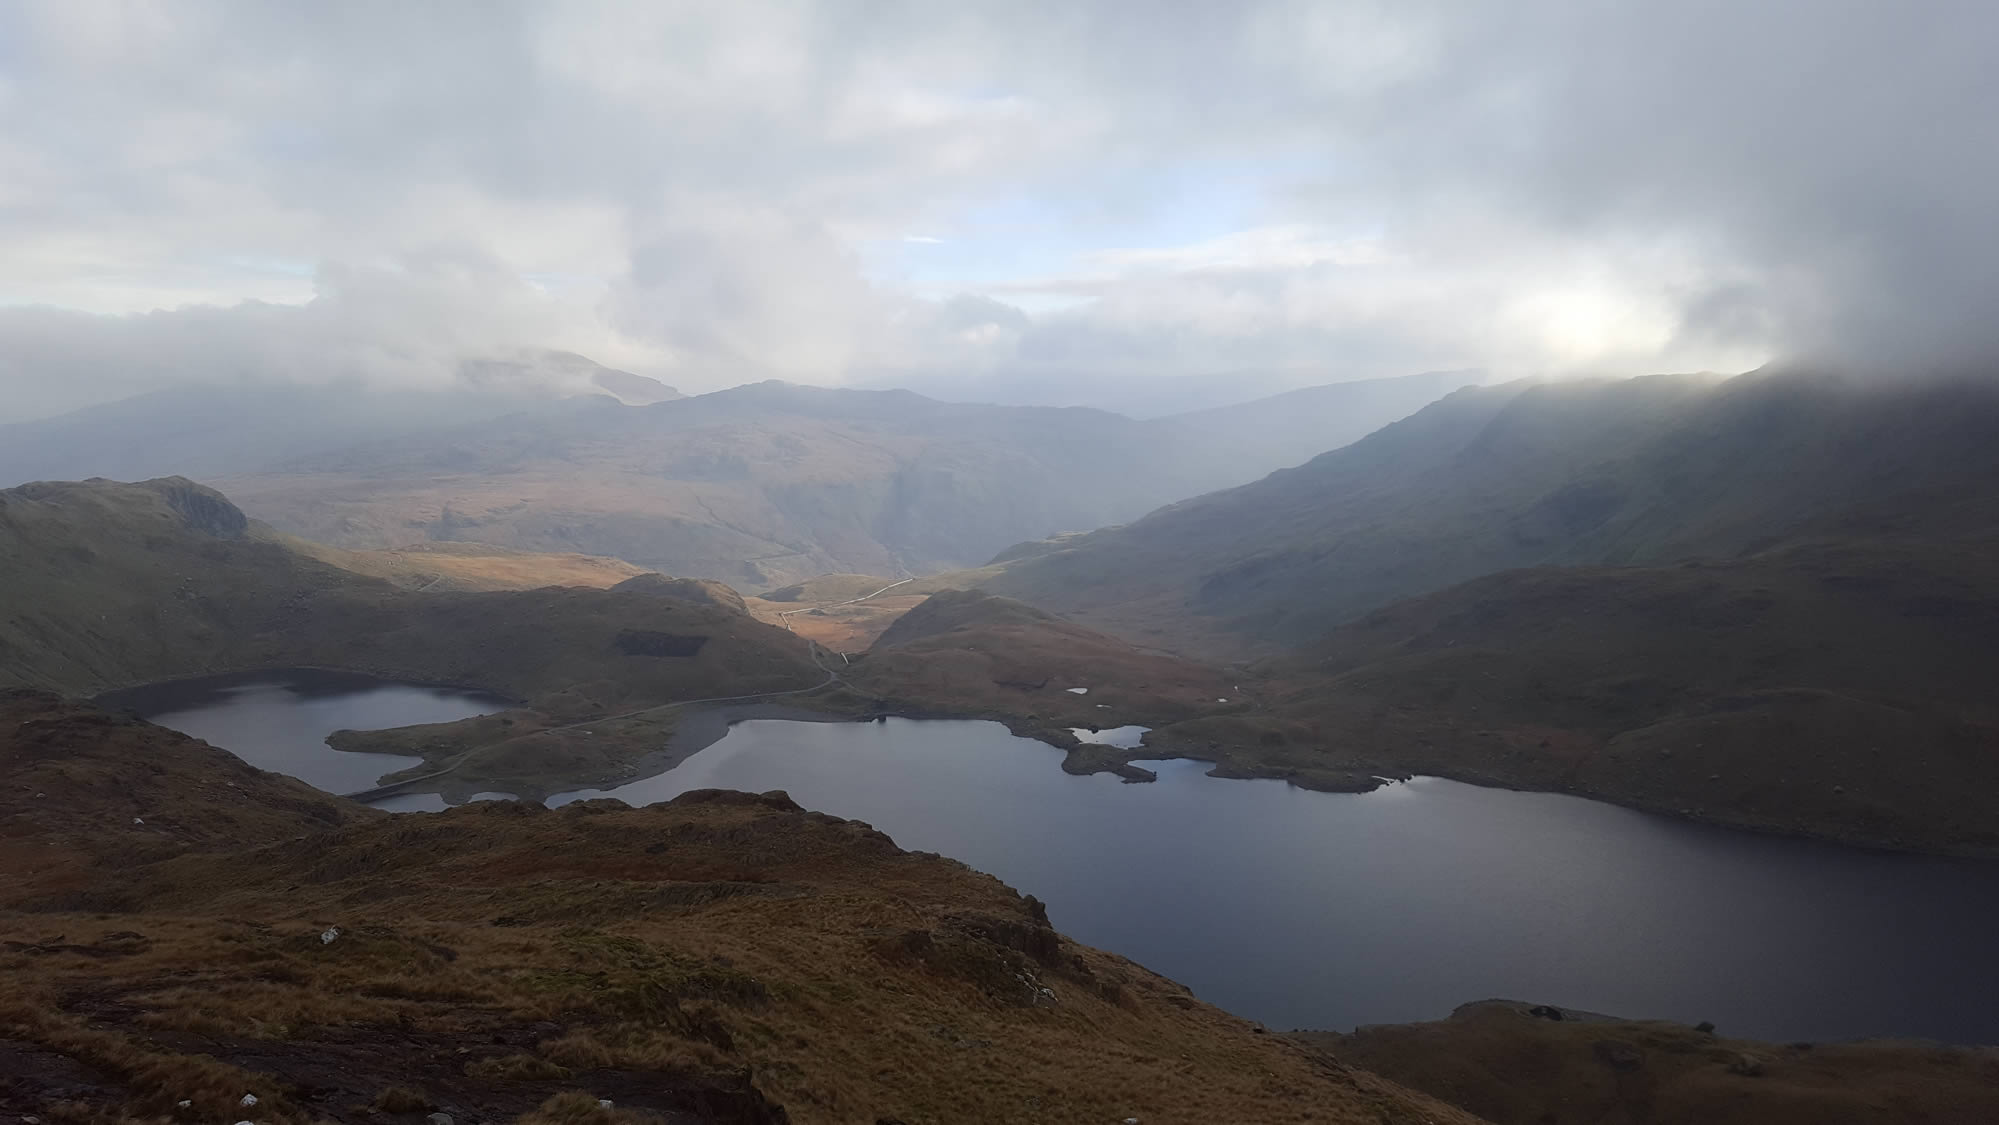 View from the Pyg Track, Snowdon